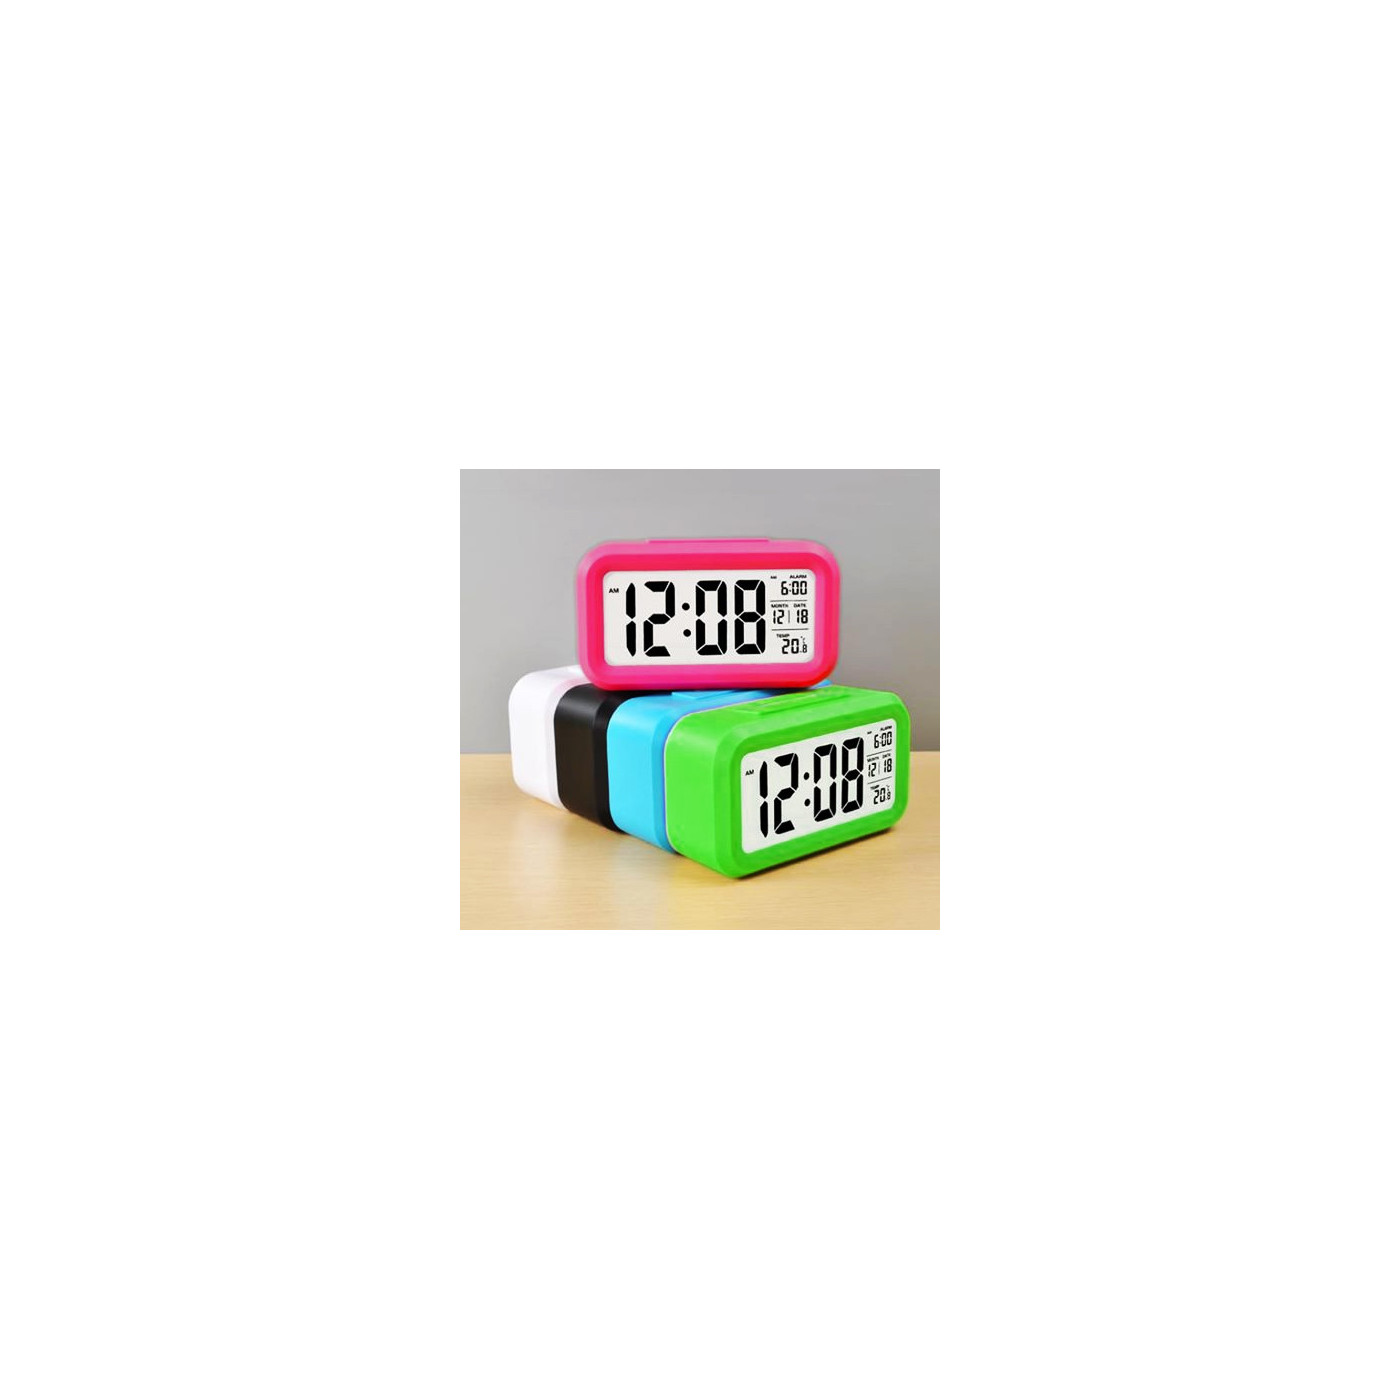 Clock with alarm in cheerful color: blue  - 1